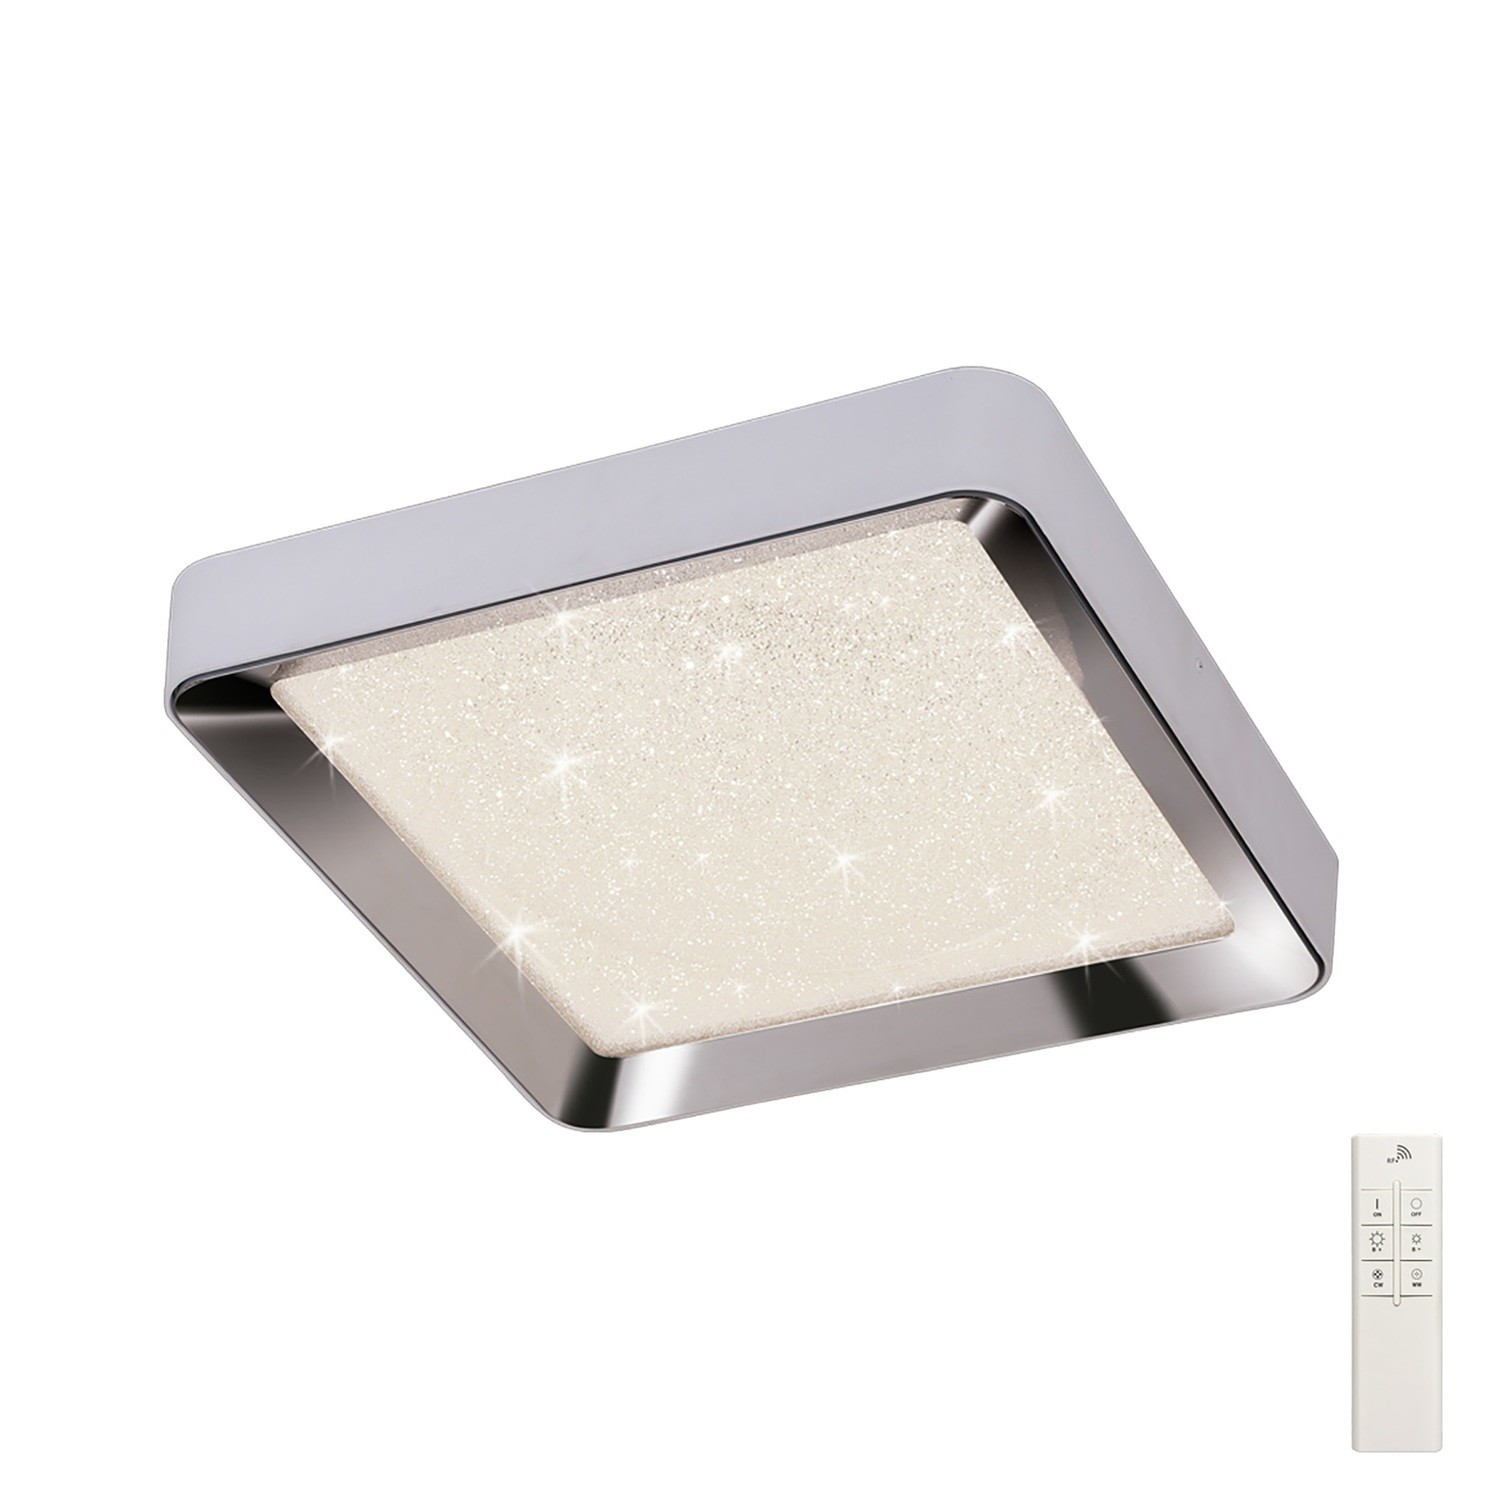 Male Flush 50cm Square 24W LED 3000-6500K Tuneable, 1920lm, Remote Control Chrome/ Acrylic